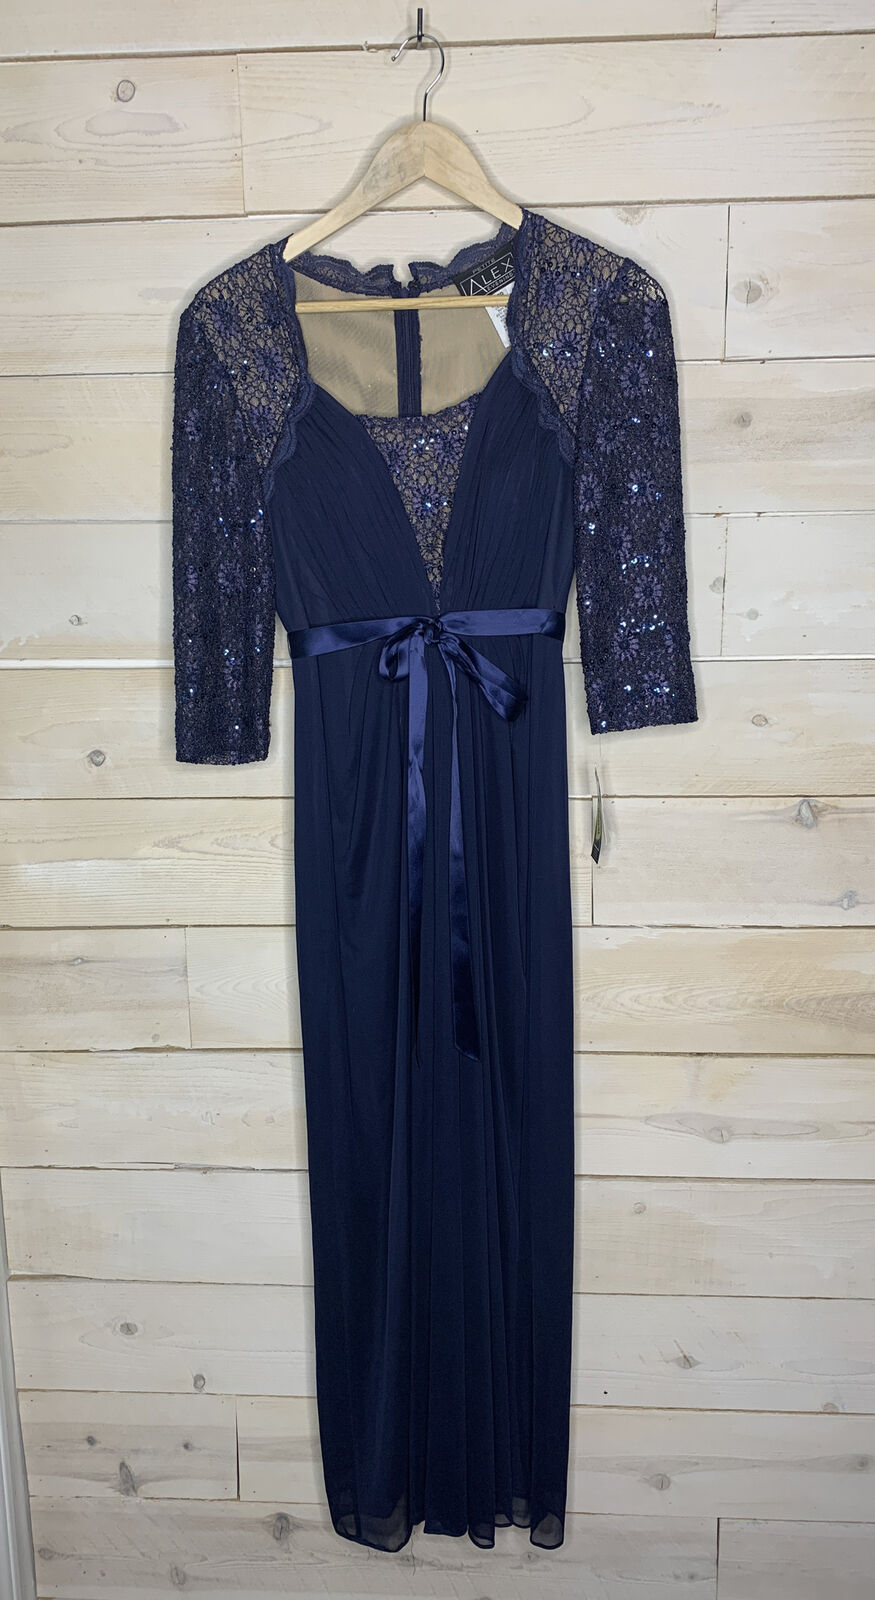 NWT Alex Evenings Navy 3/4 Sleeve Gown Dress Mother Of The Bride Sz 6P